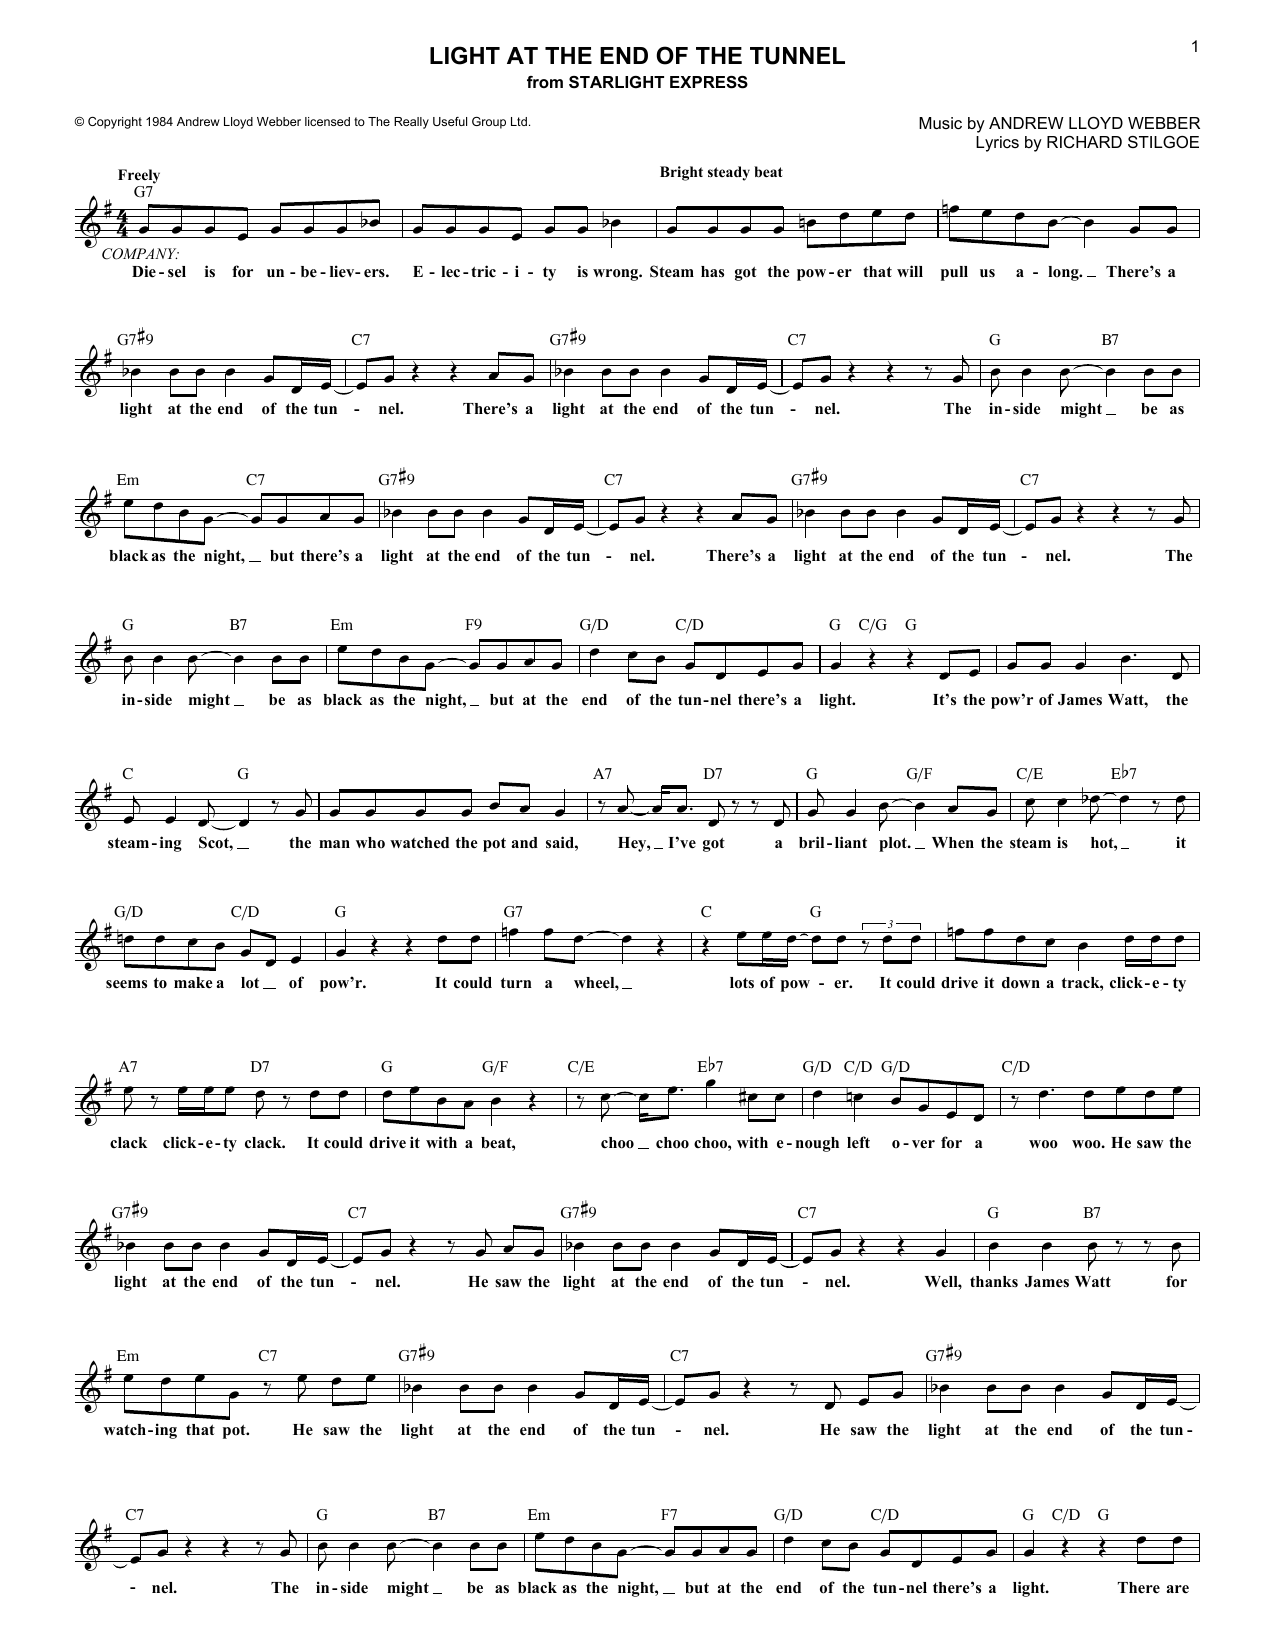 Andrew Lloyd Webber Light At The End Of The Tunnel sheet music notes and chords. Download Printable PDF.